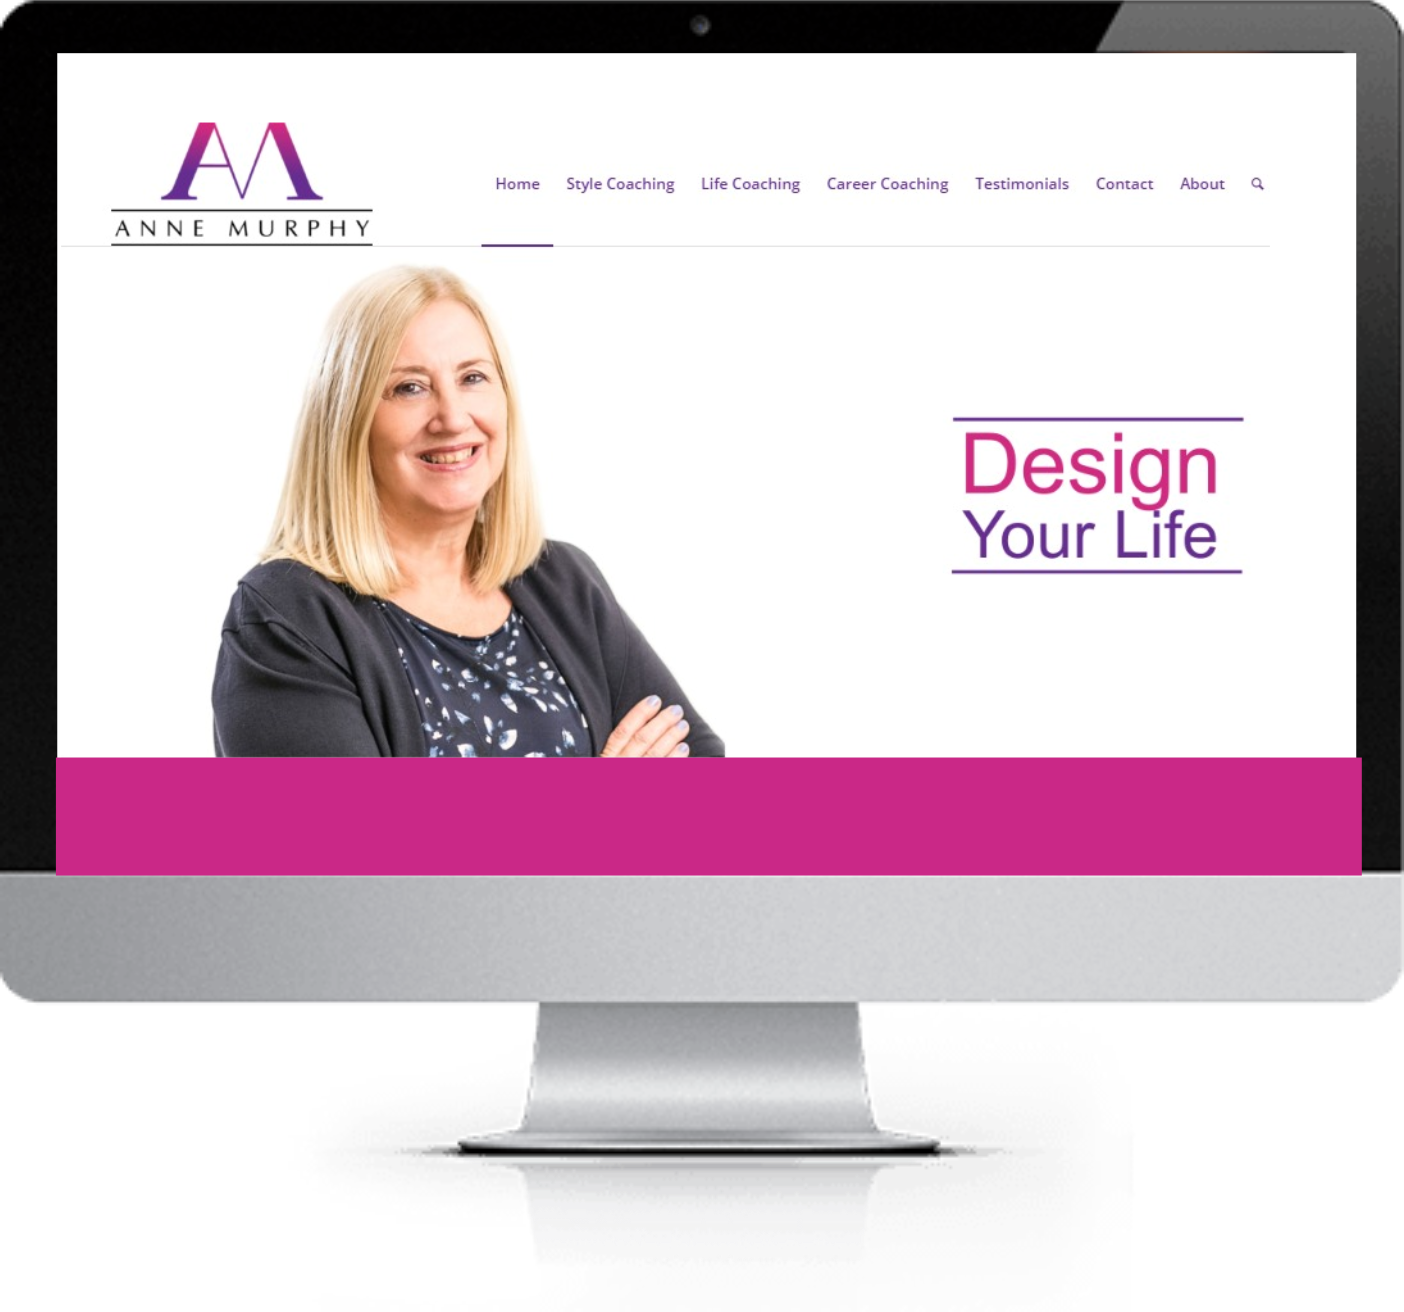 Website Redesign - Anne Murphy - After